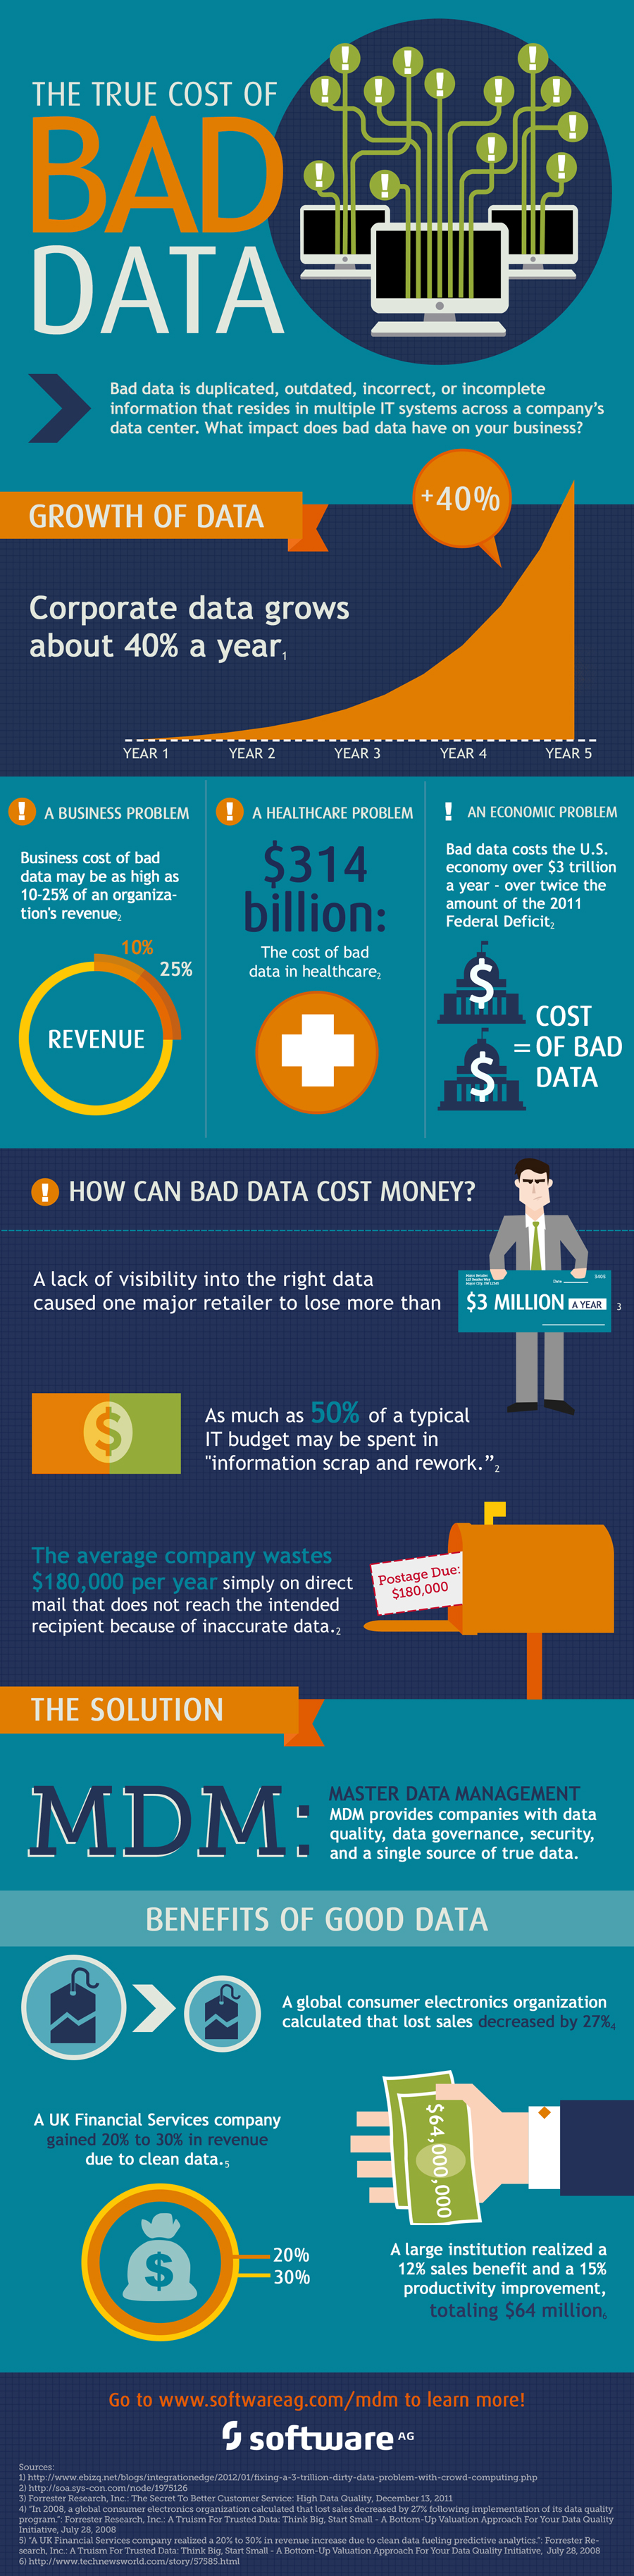 Cost of bad data infographic